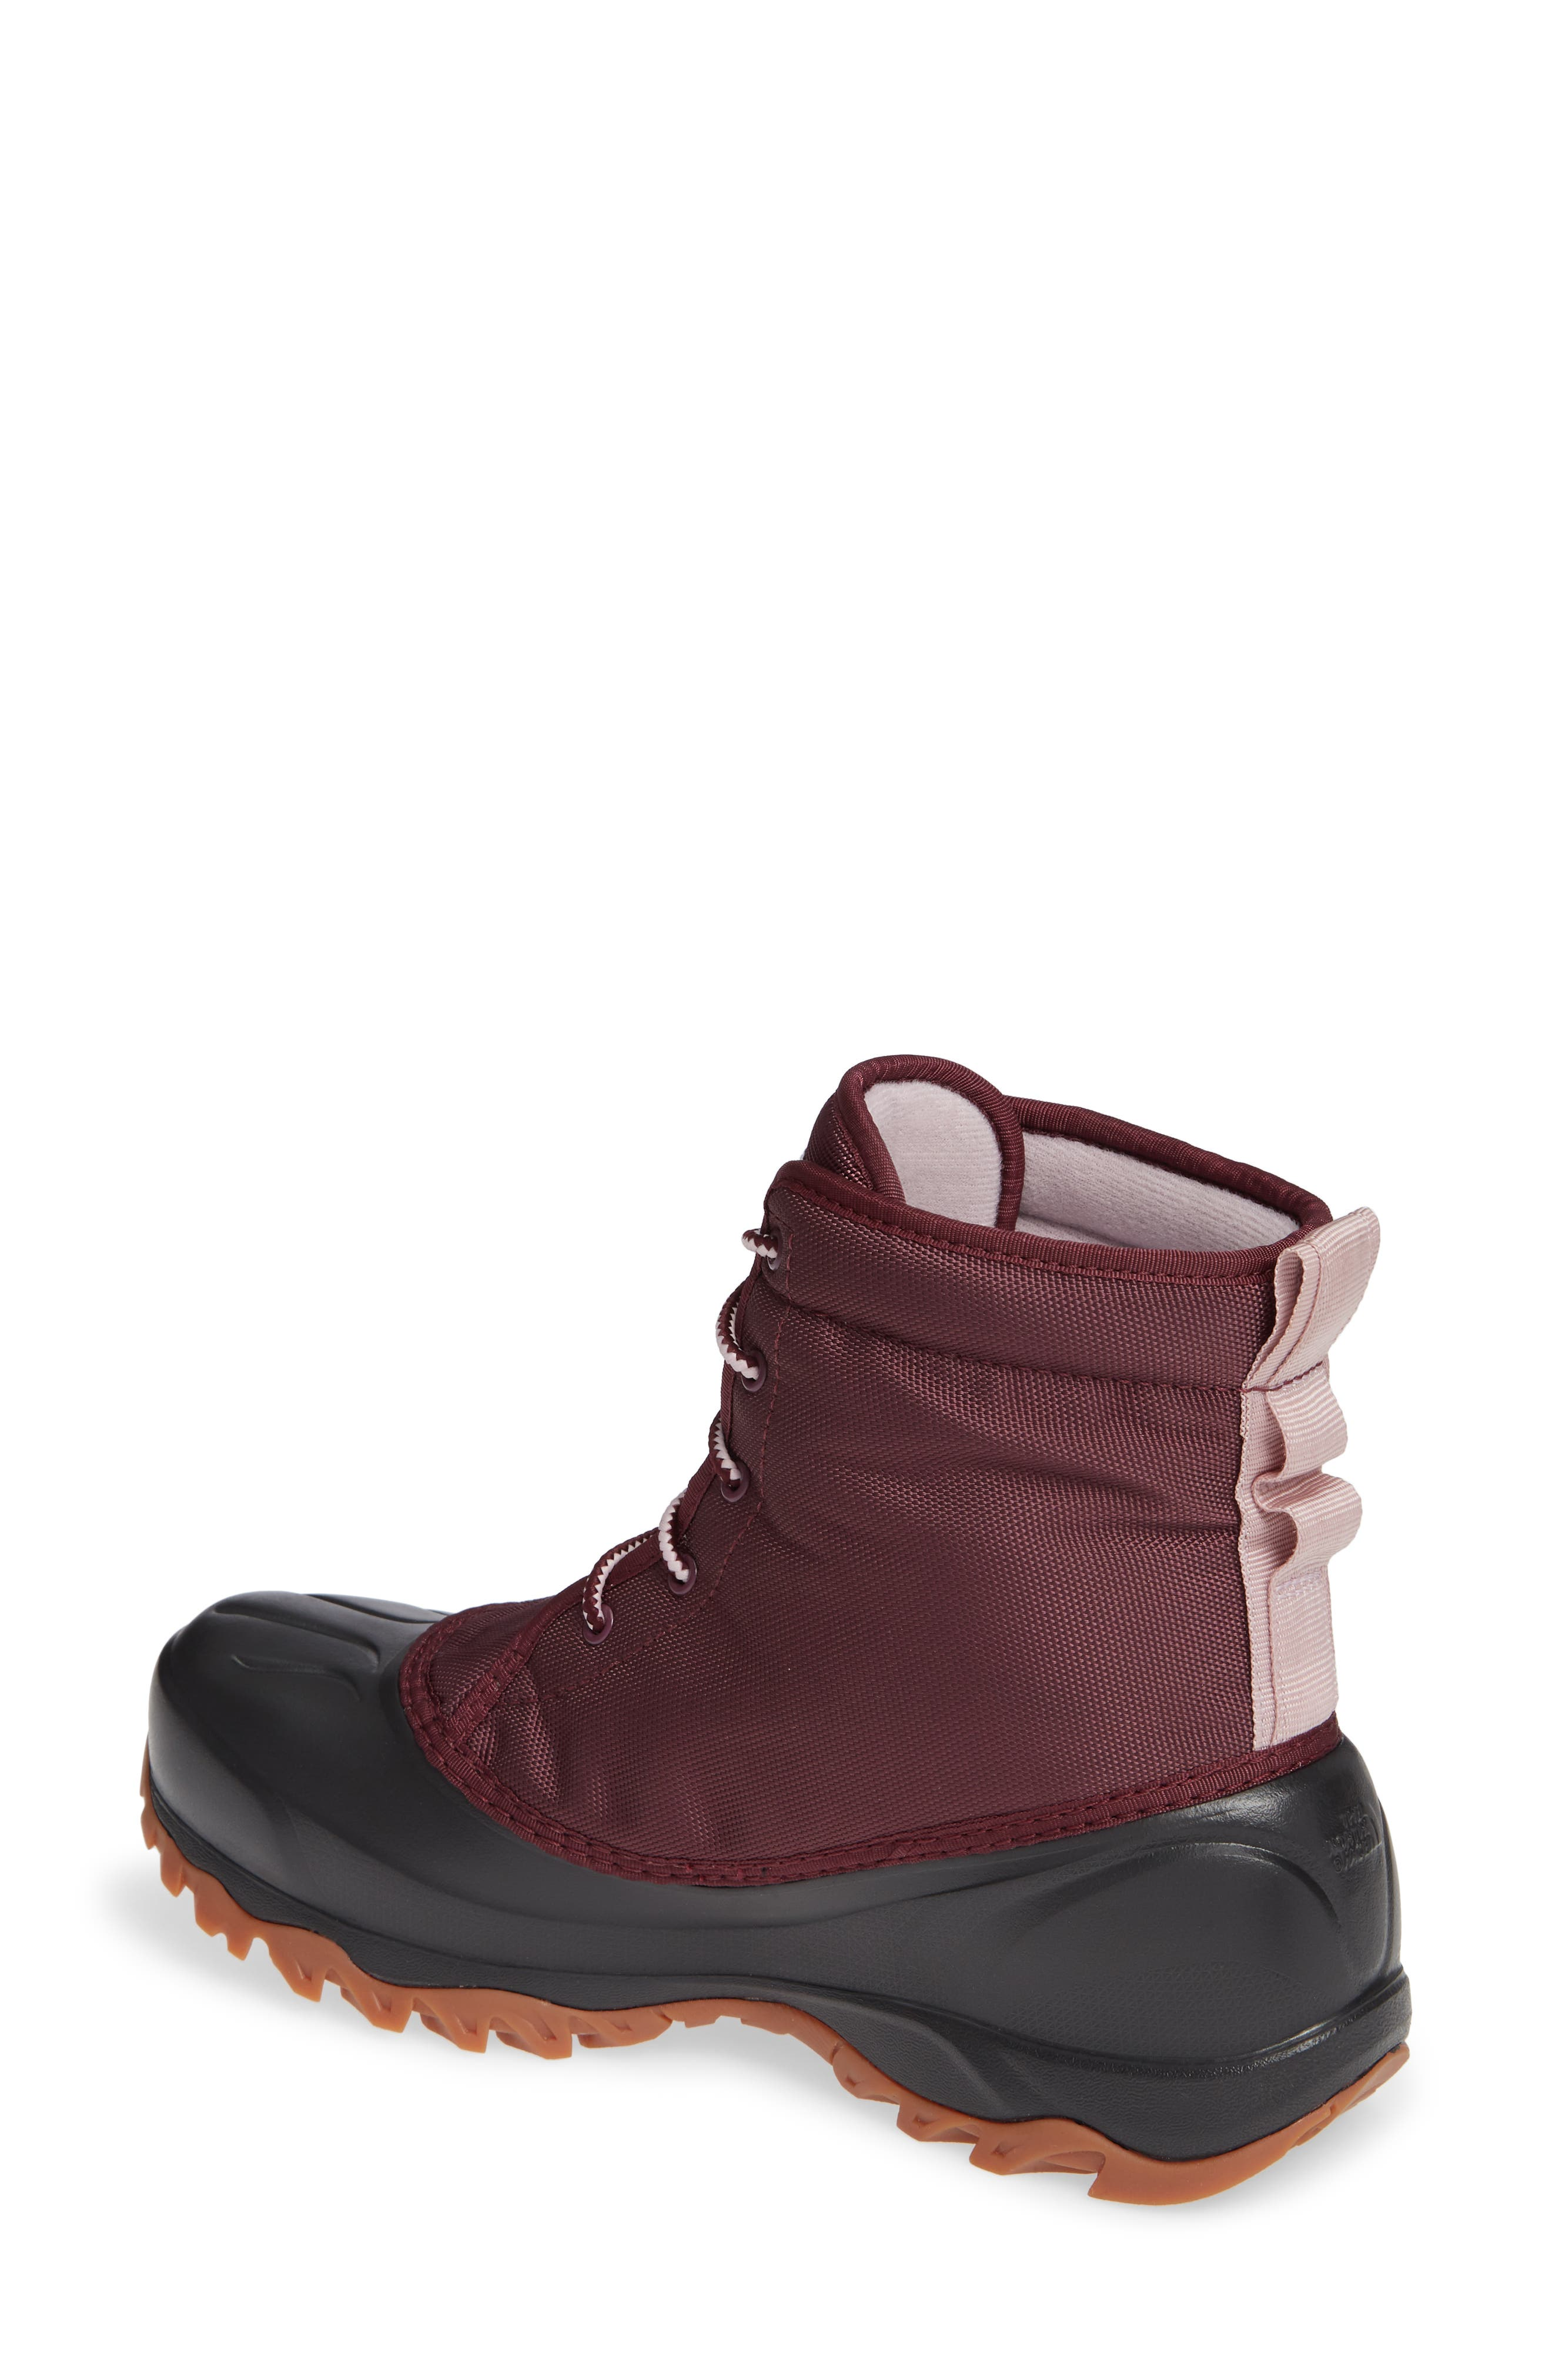 Tsumoru Waterproof Insulated Snow Boot,                             Alternate thumbnail 2, color,                             FIG/ BURNISHED LILAC